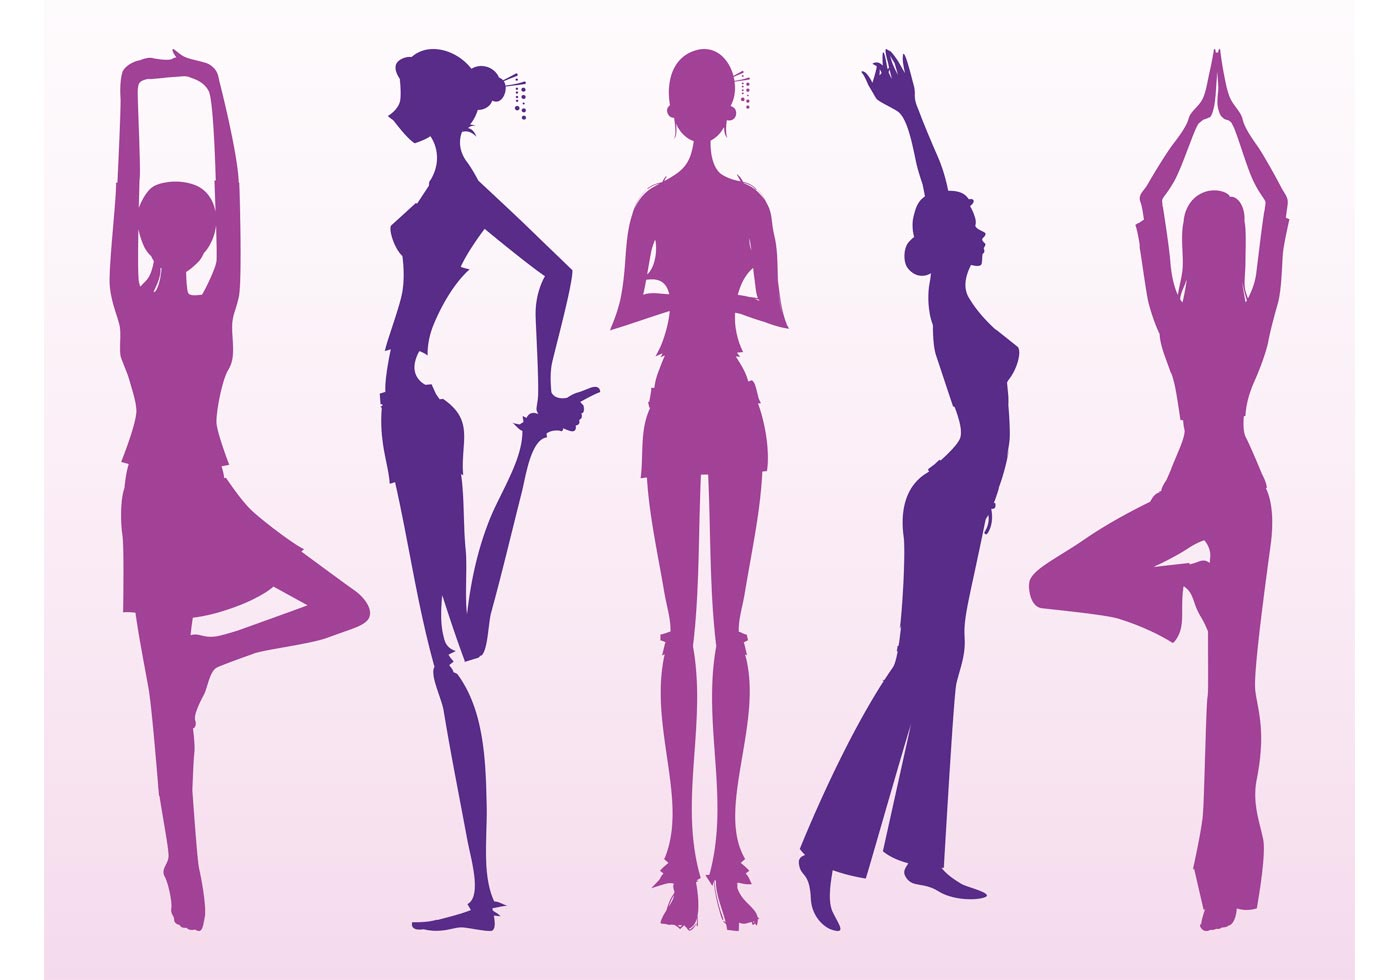 Stretching Girls Silhouettes Download Free Vector Art